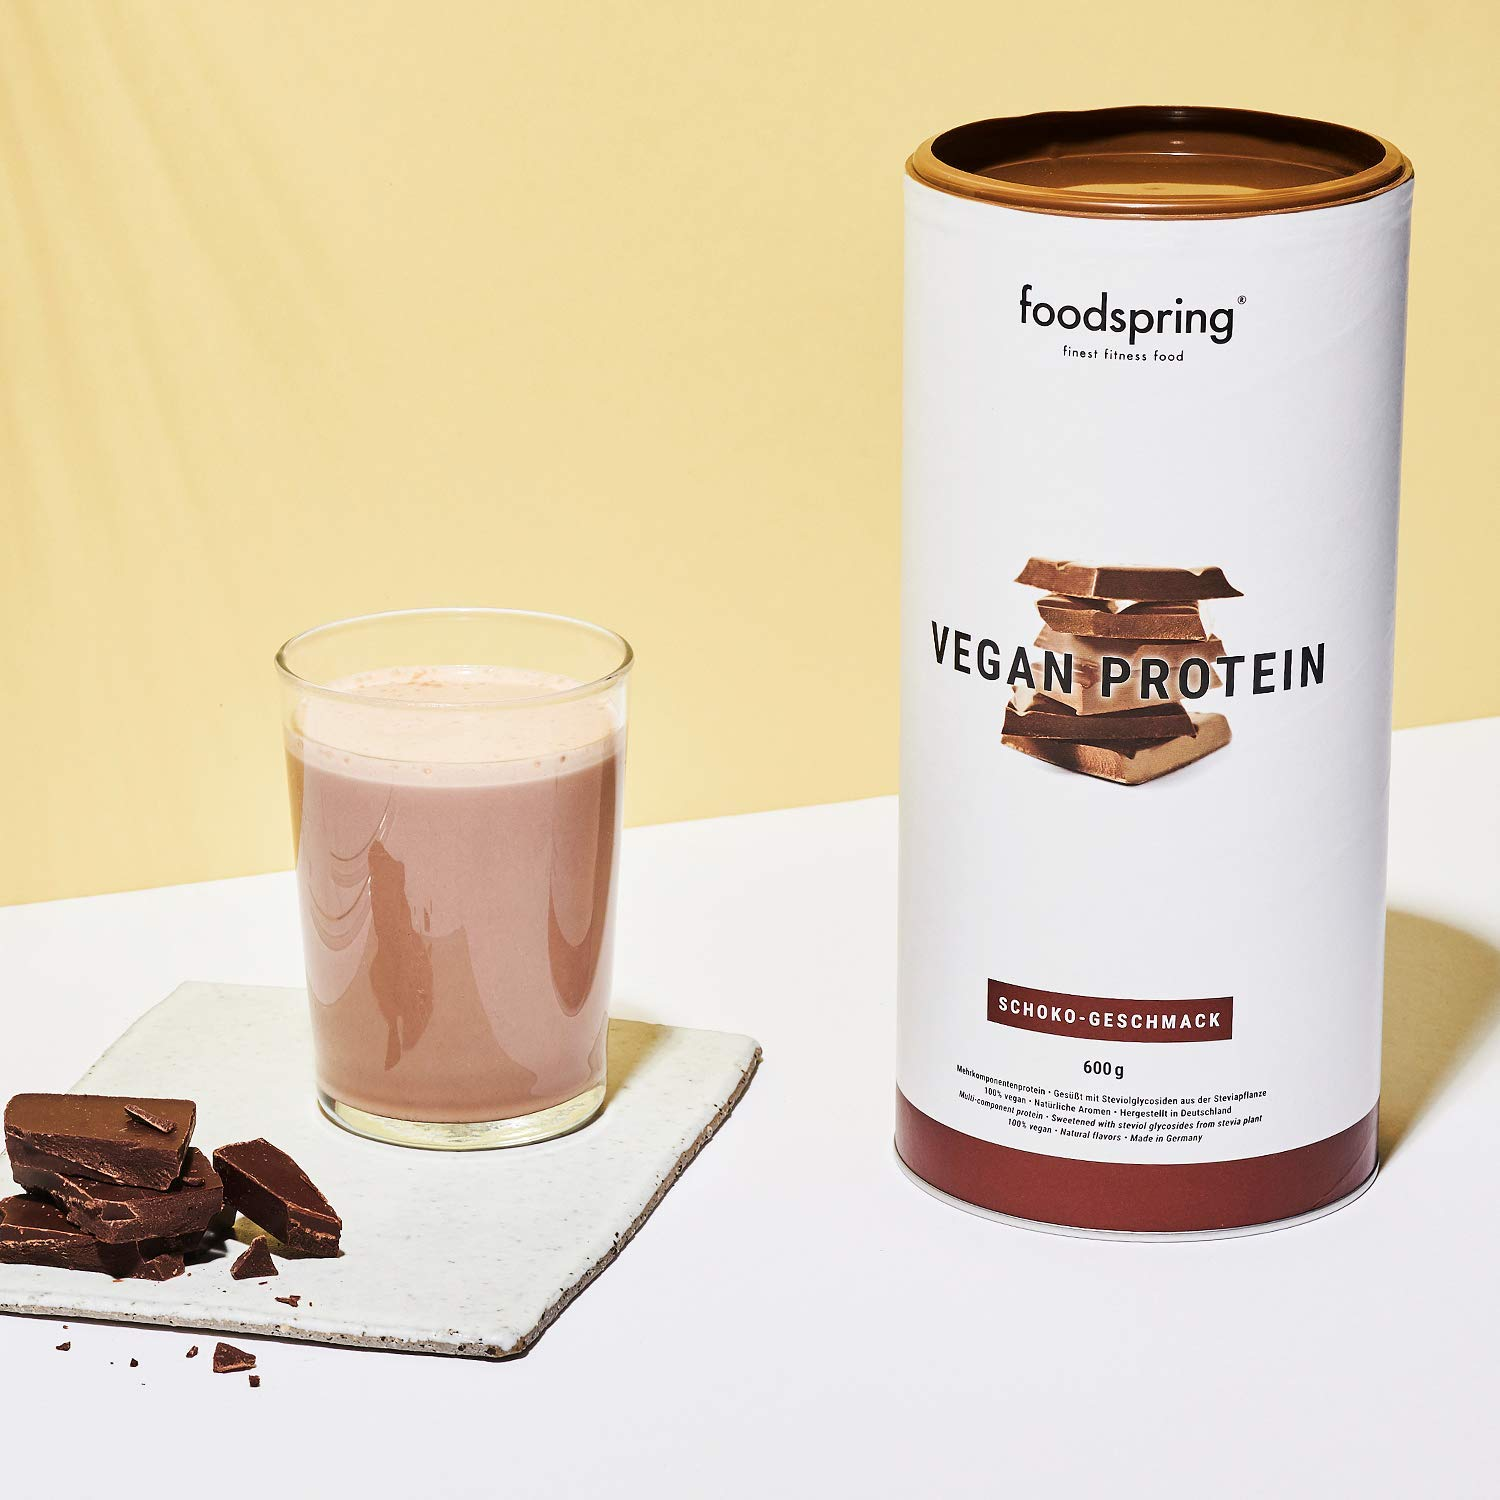 foodspring Proteinas Vegetales (Chocolate): Amazon.es: Salud y cuidado personal